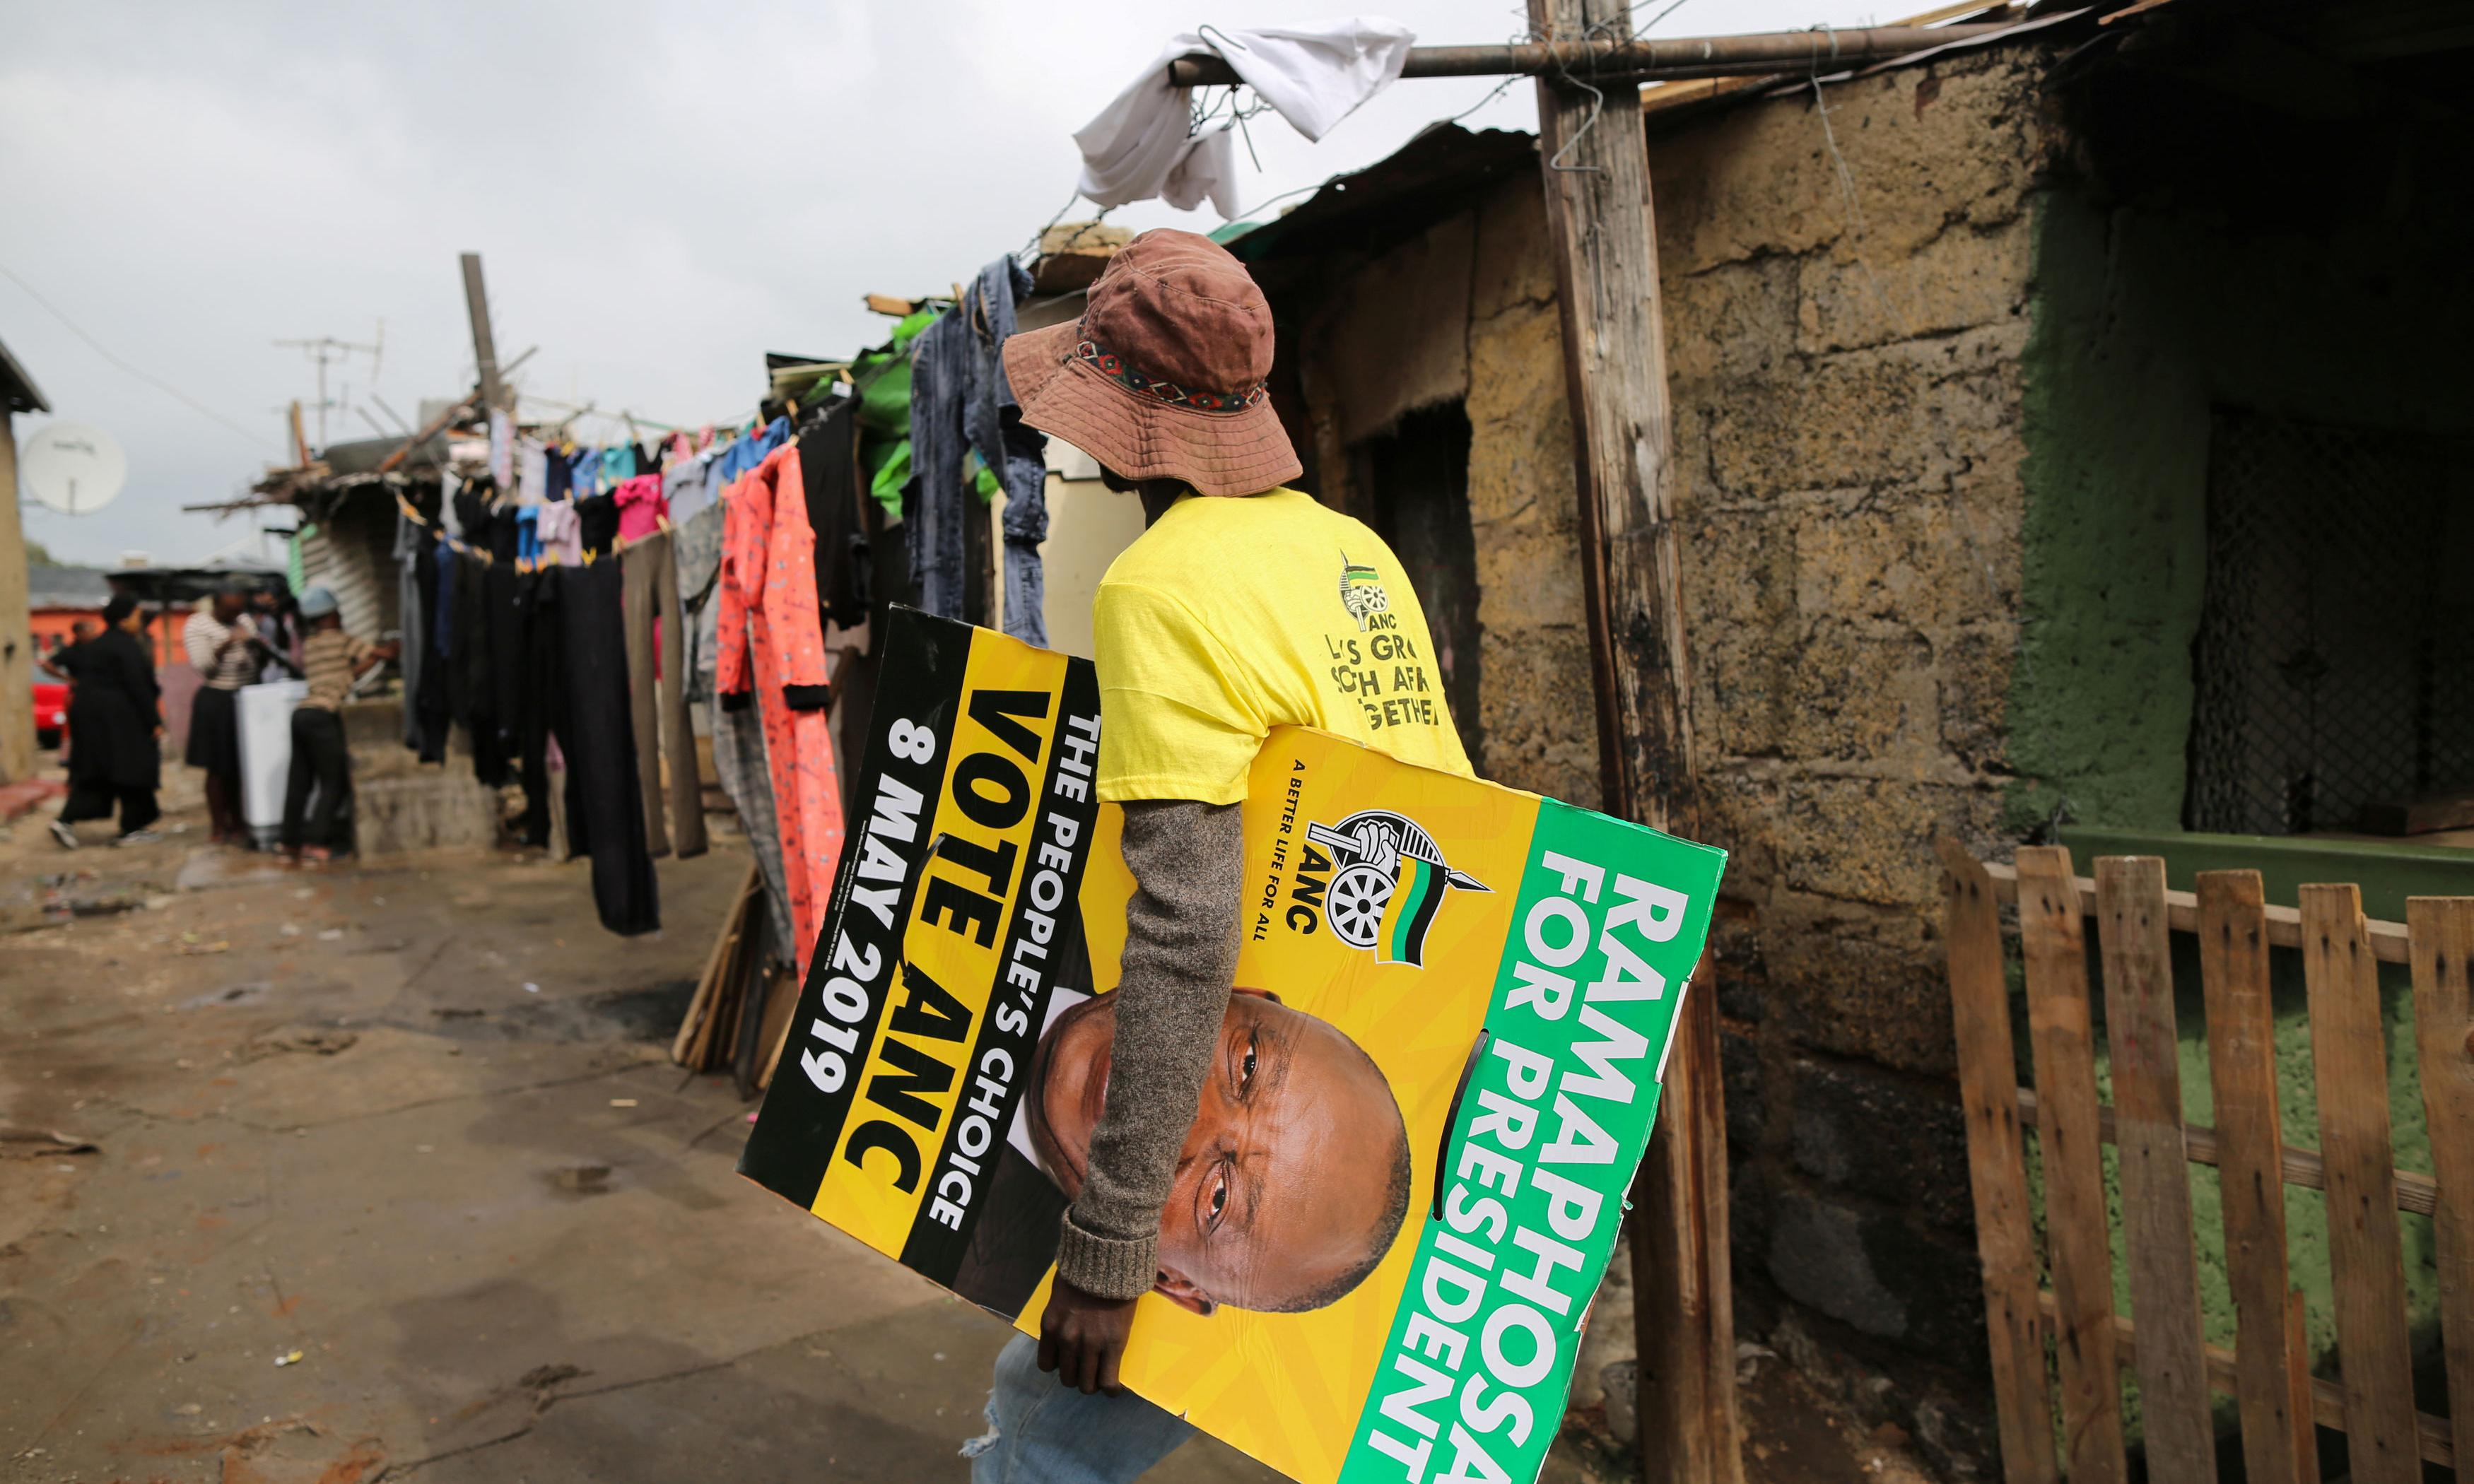 'They don't get it': South Africa's scarred ANC faces voter anger